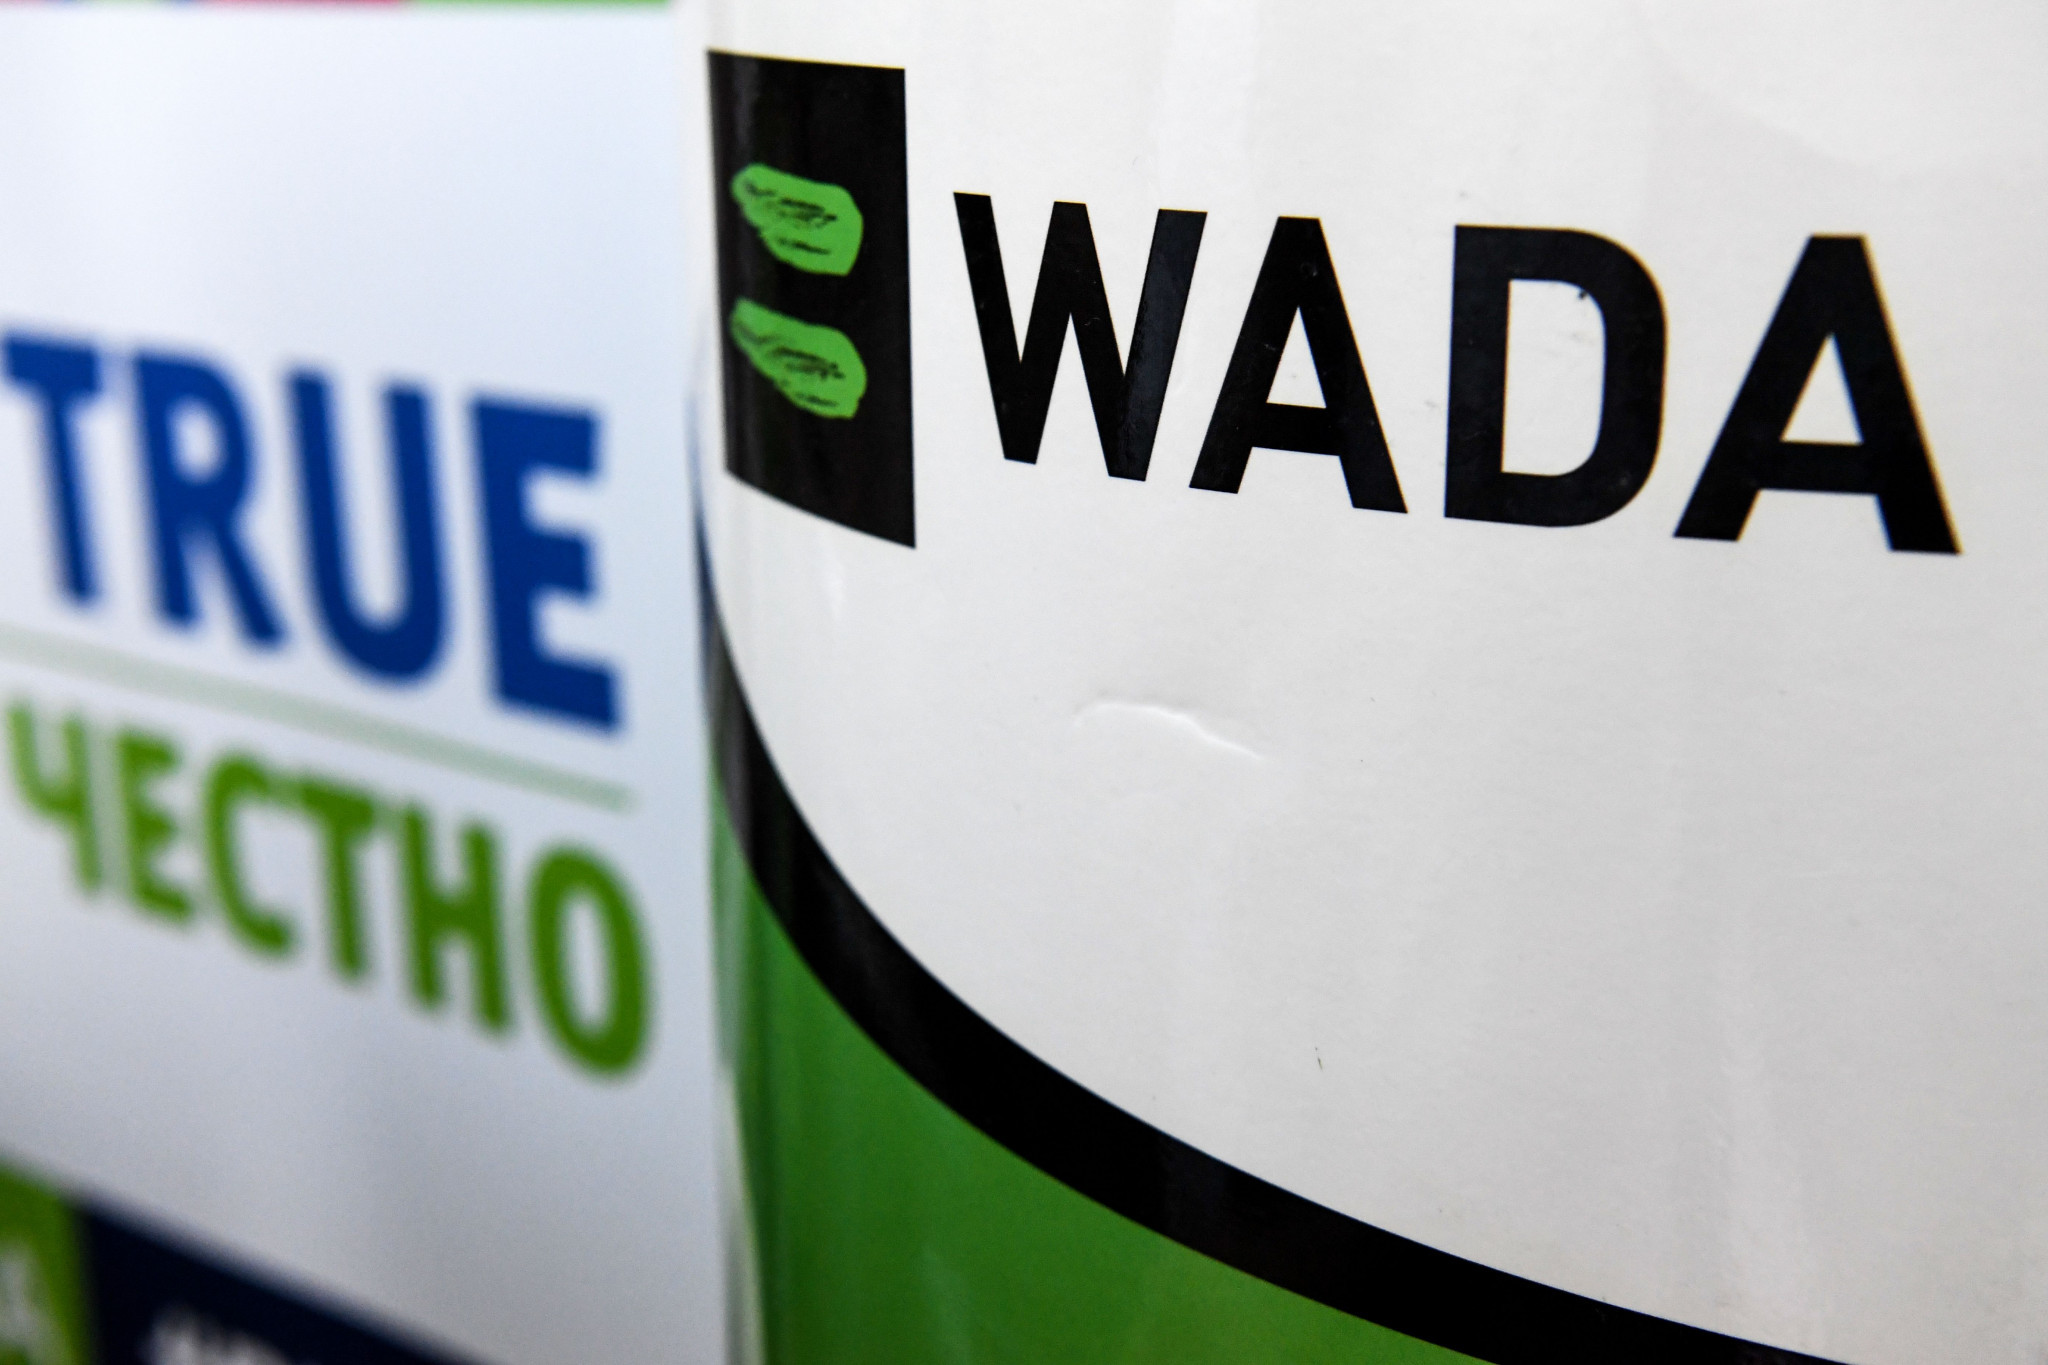 WADA's Executive Committee approved the revised list at their meeting last month ©Getty Images